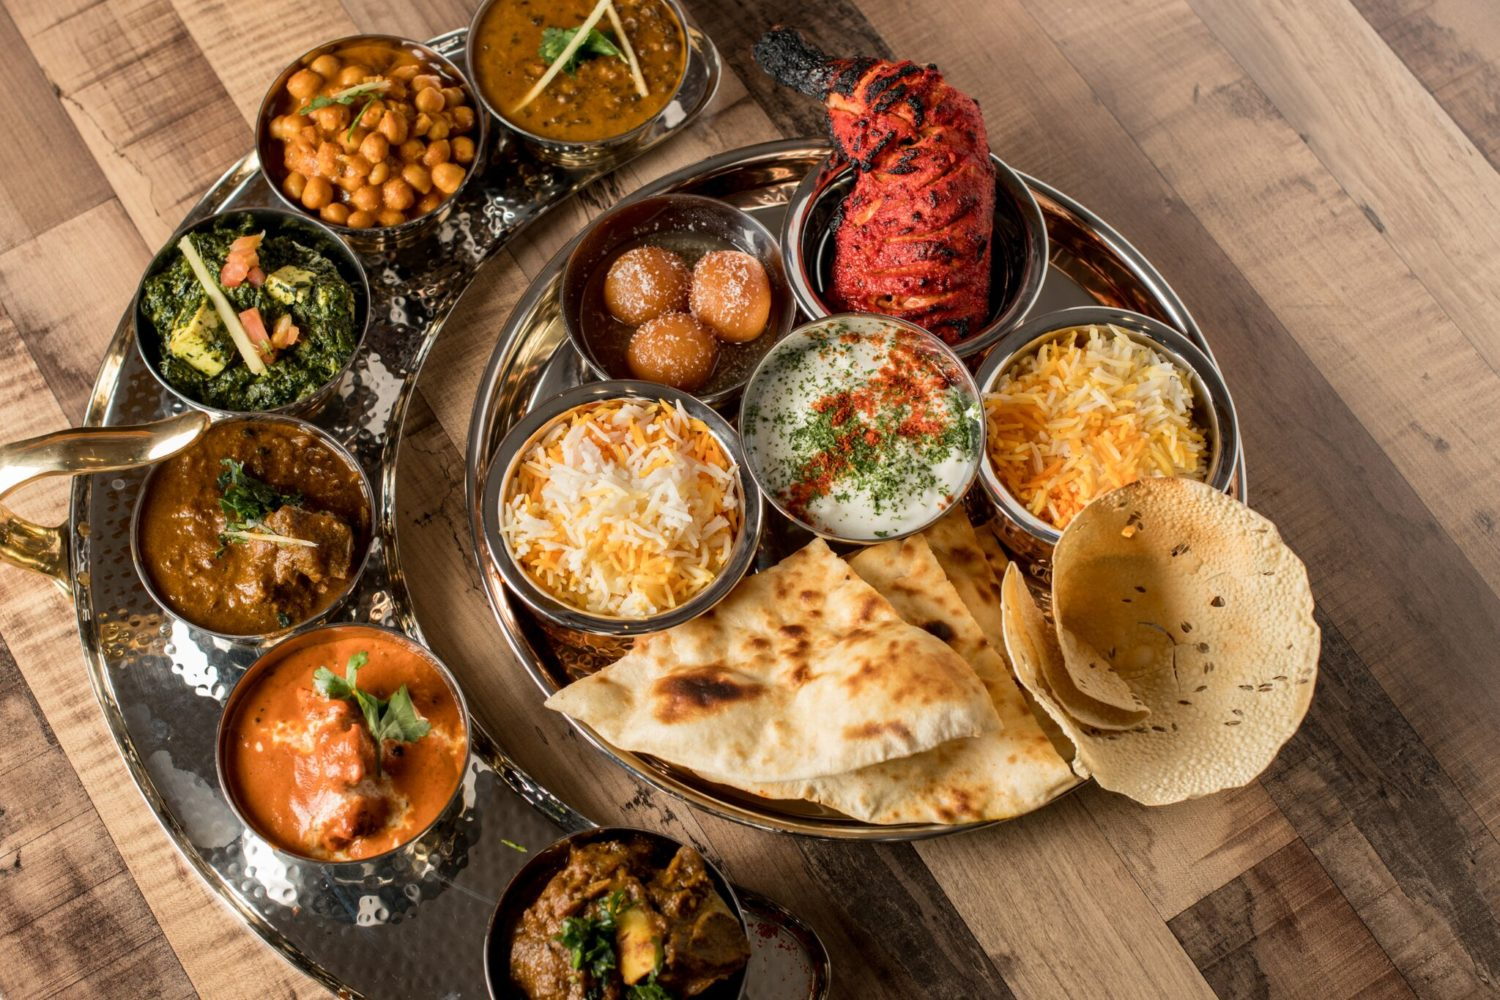 The Bombay Thali, a sampling platter of meat and vegetables. Photograph by Emma McAlary.